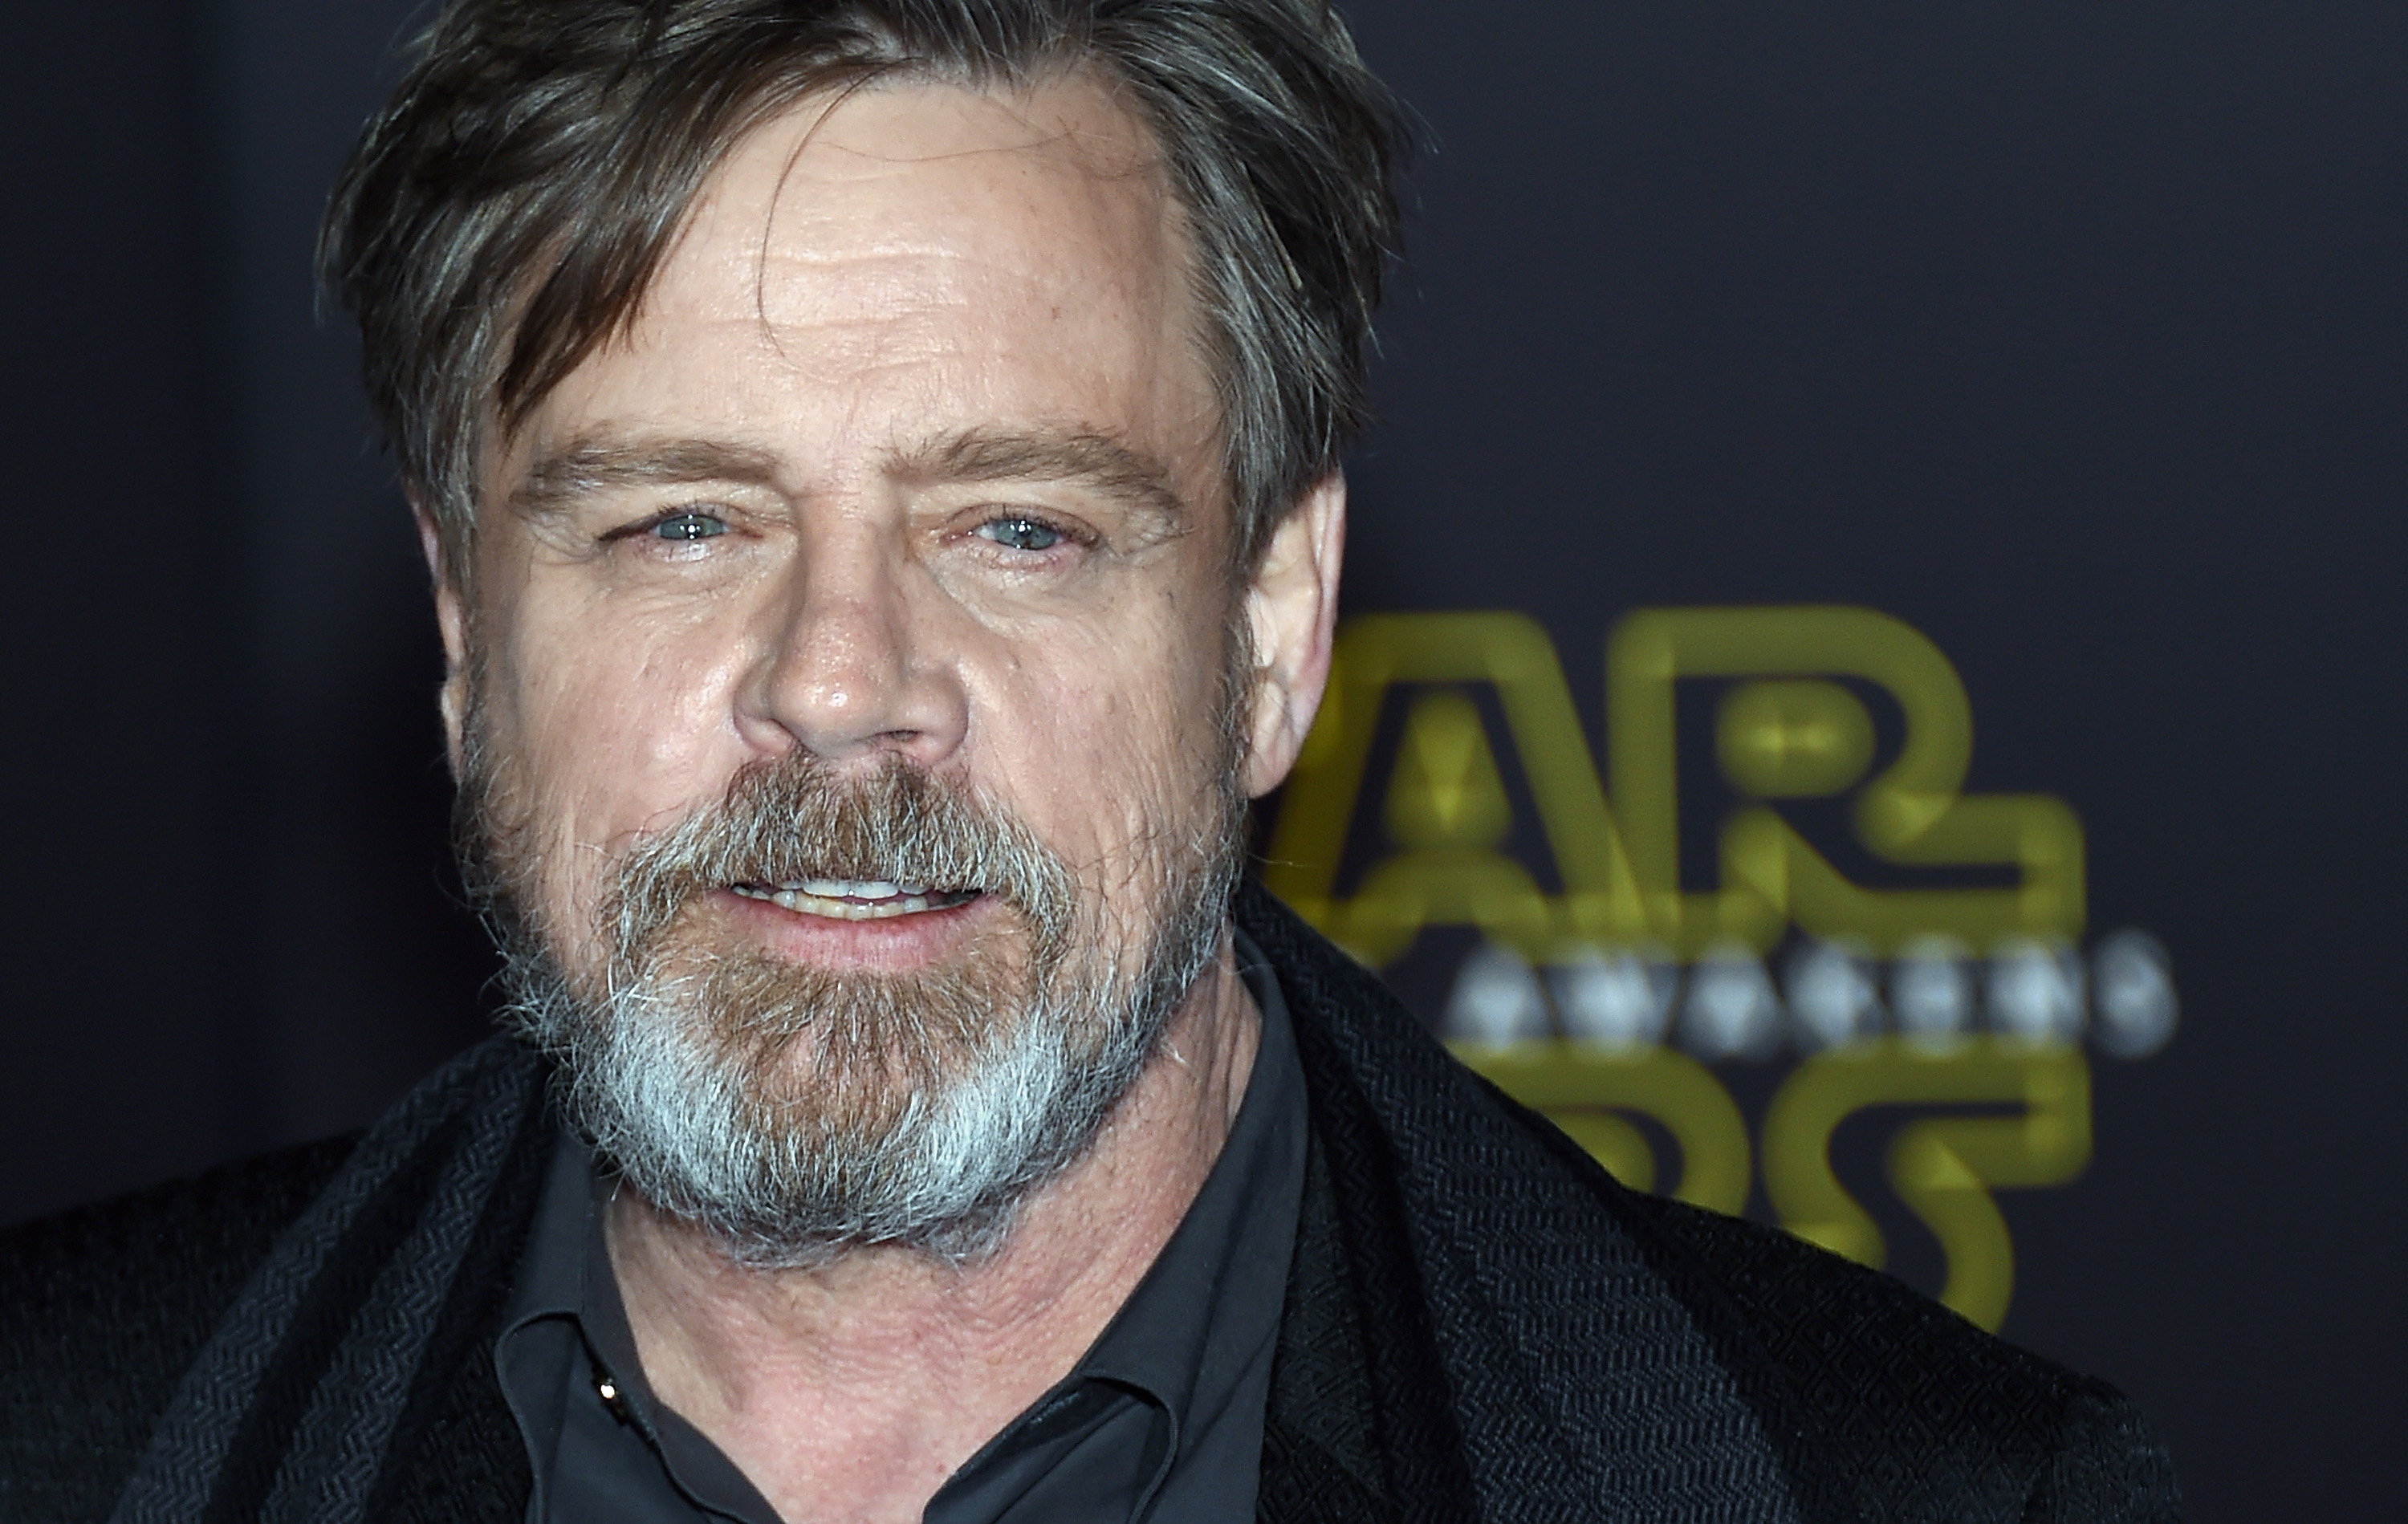 Actor Mark Hamill attends the premiere of Walt Disney Pictures and Lucasfilm's  Star Wars: The Force Awakens  on December 14, 2015 in Hollywood, California.